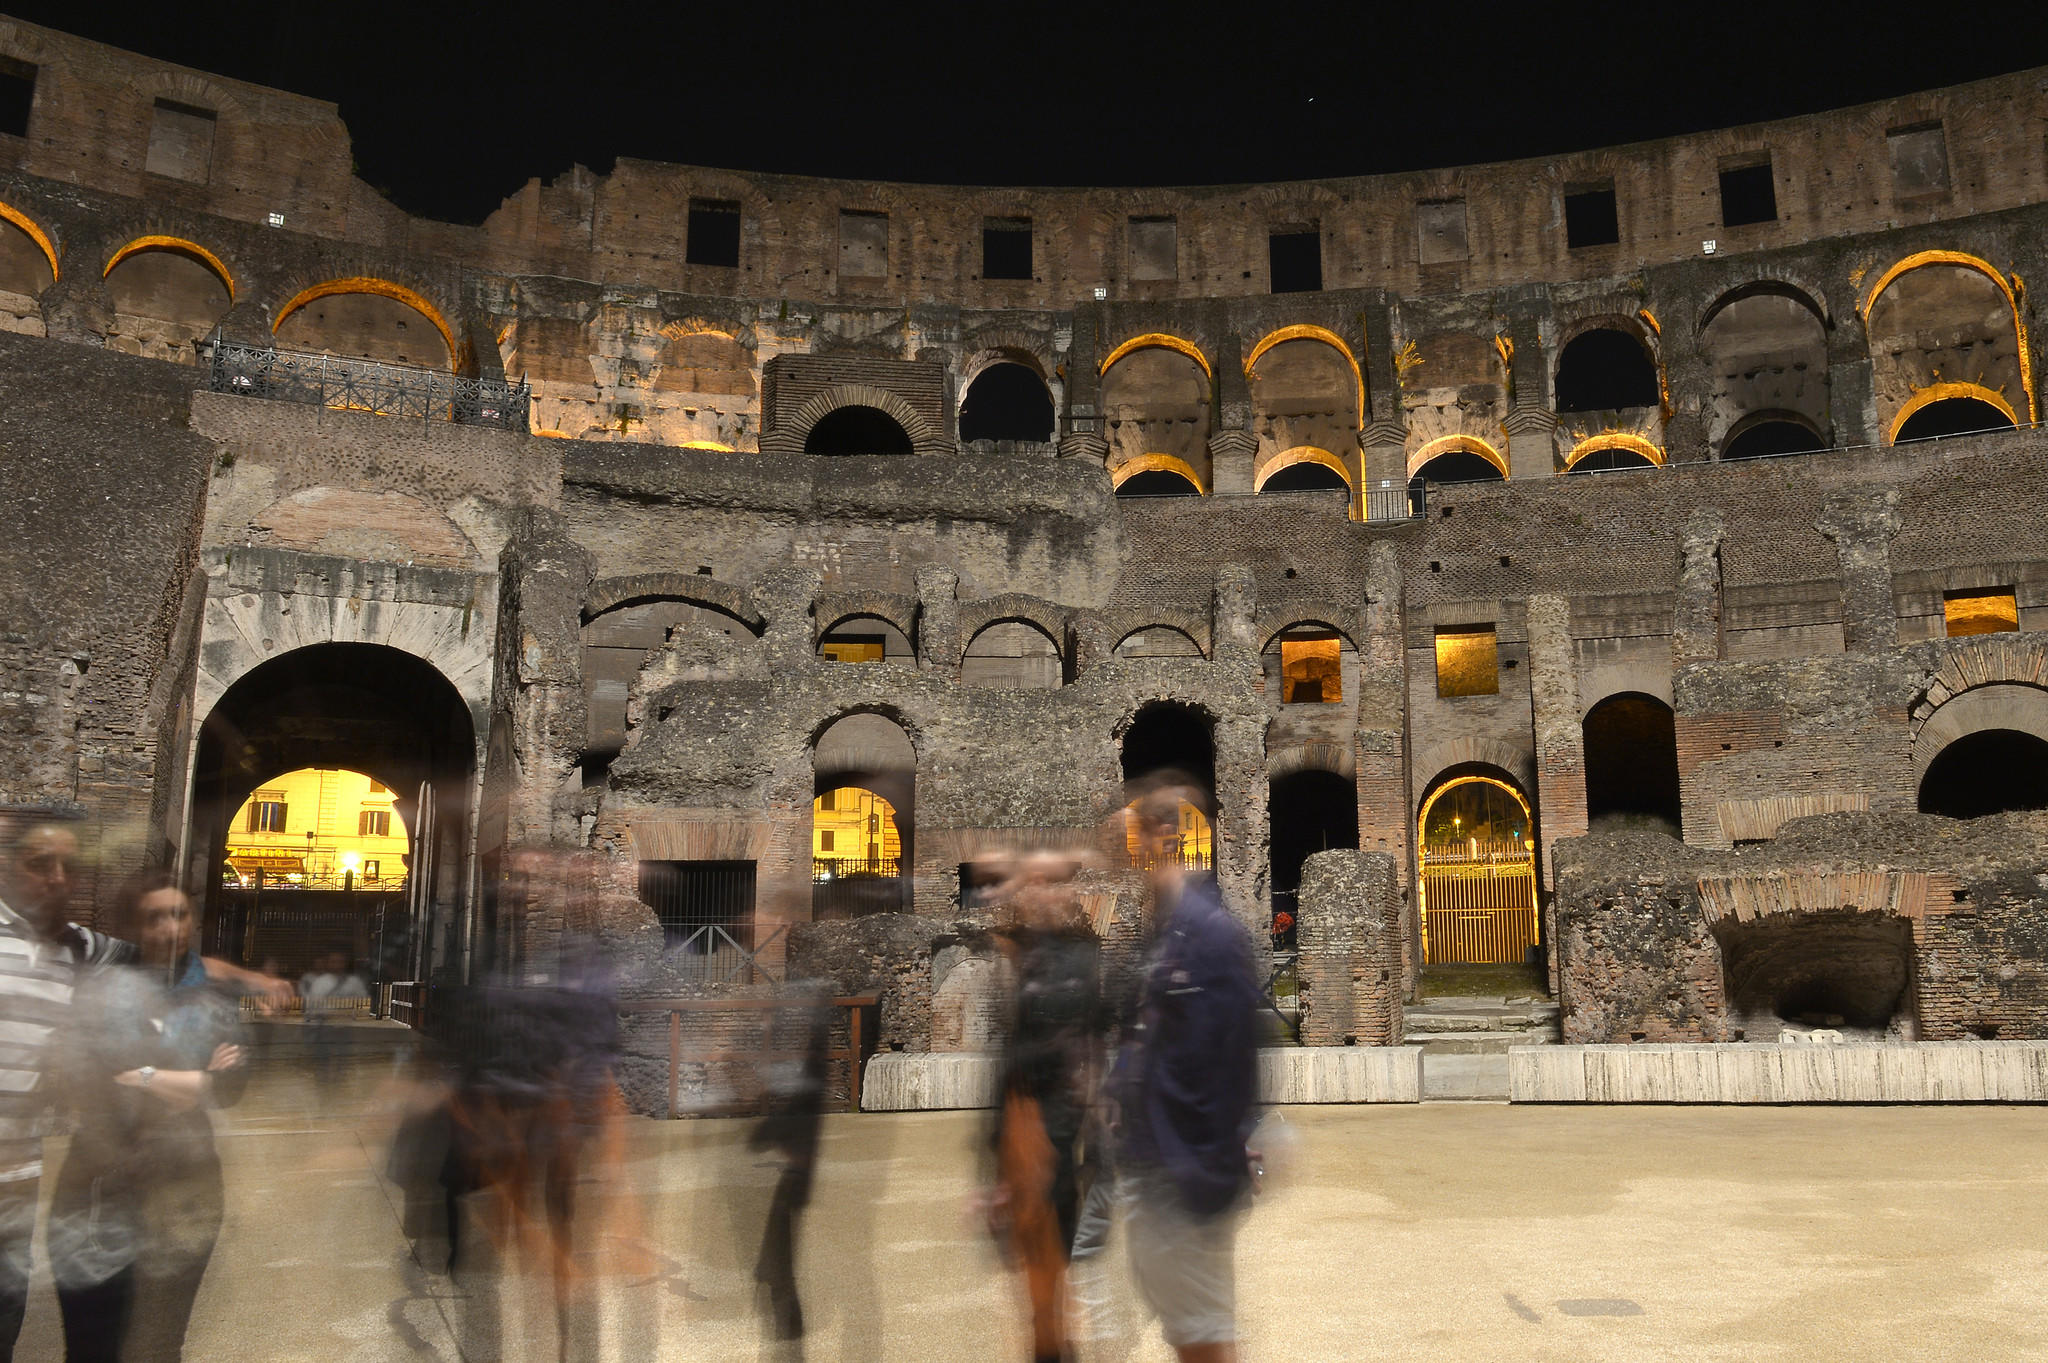 Visitors walk around the Colosseum in Rome. Functioning in groups requires compromise. In exchange for setting aside some of your needs and wants, you get to share novel experiences with your friends.